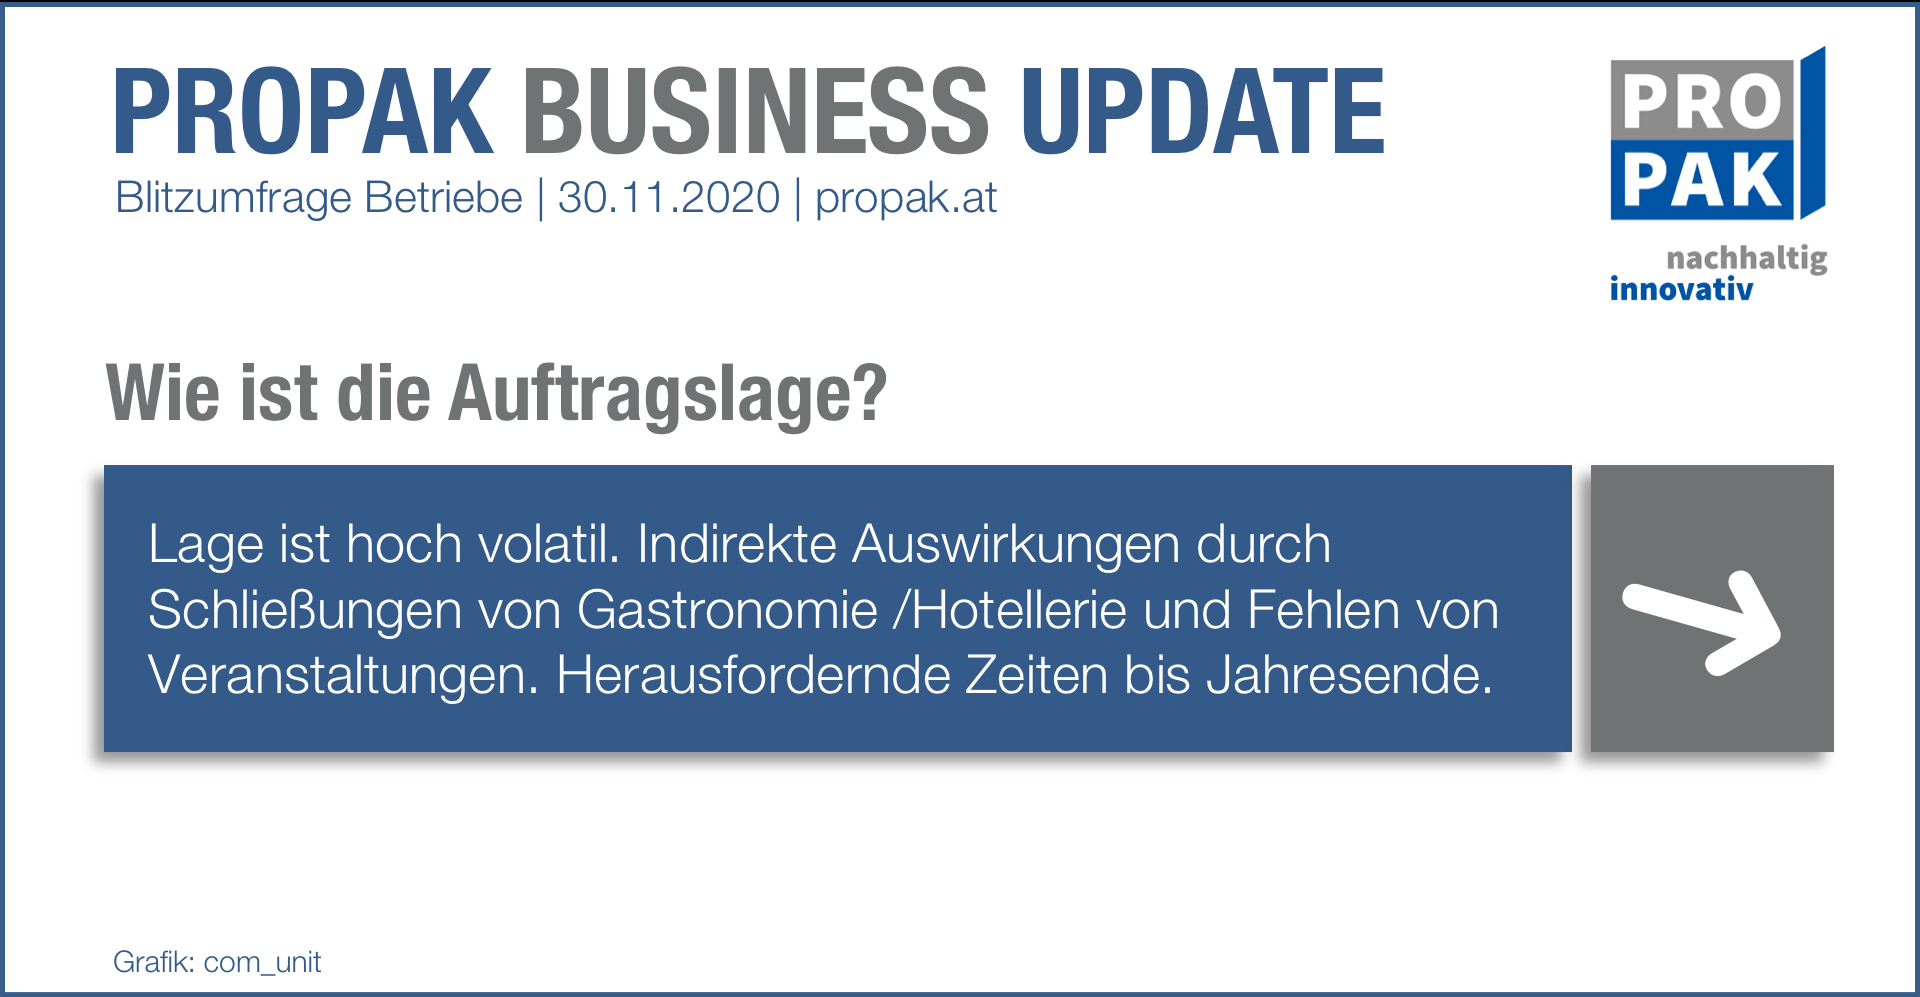 201201 PROPAK Business Update Detail